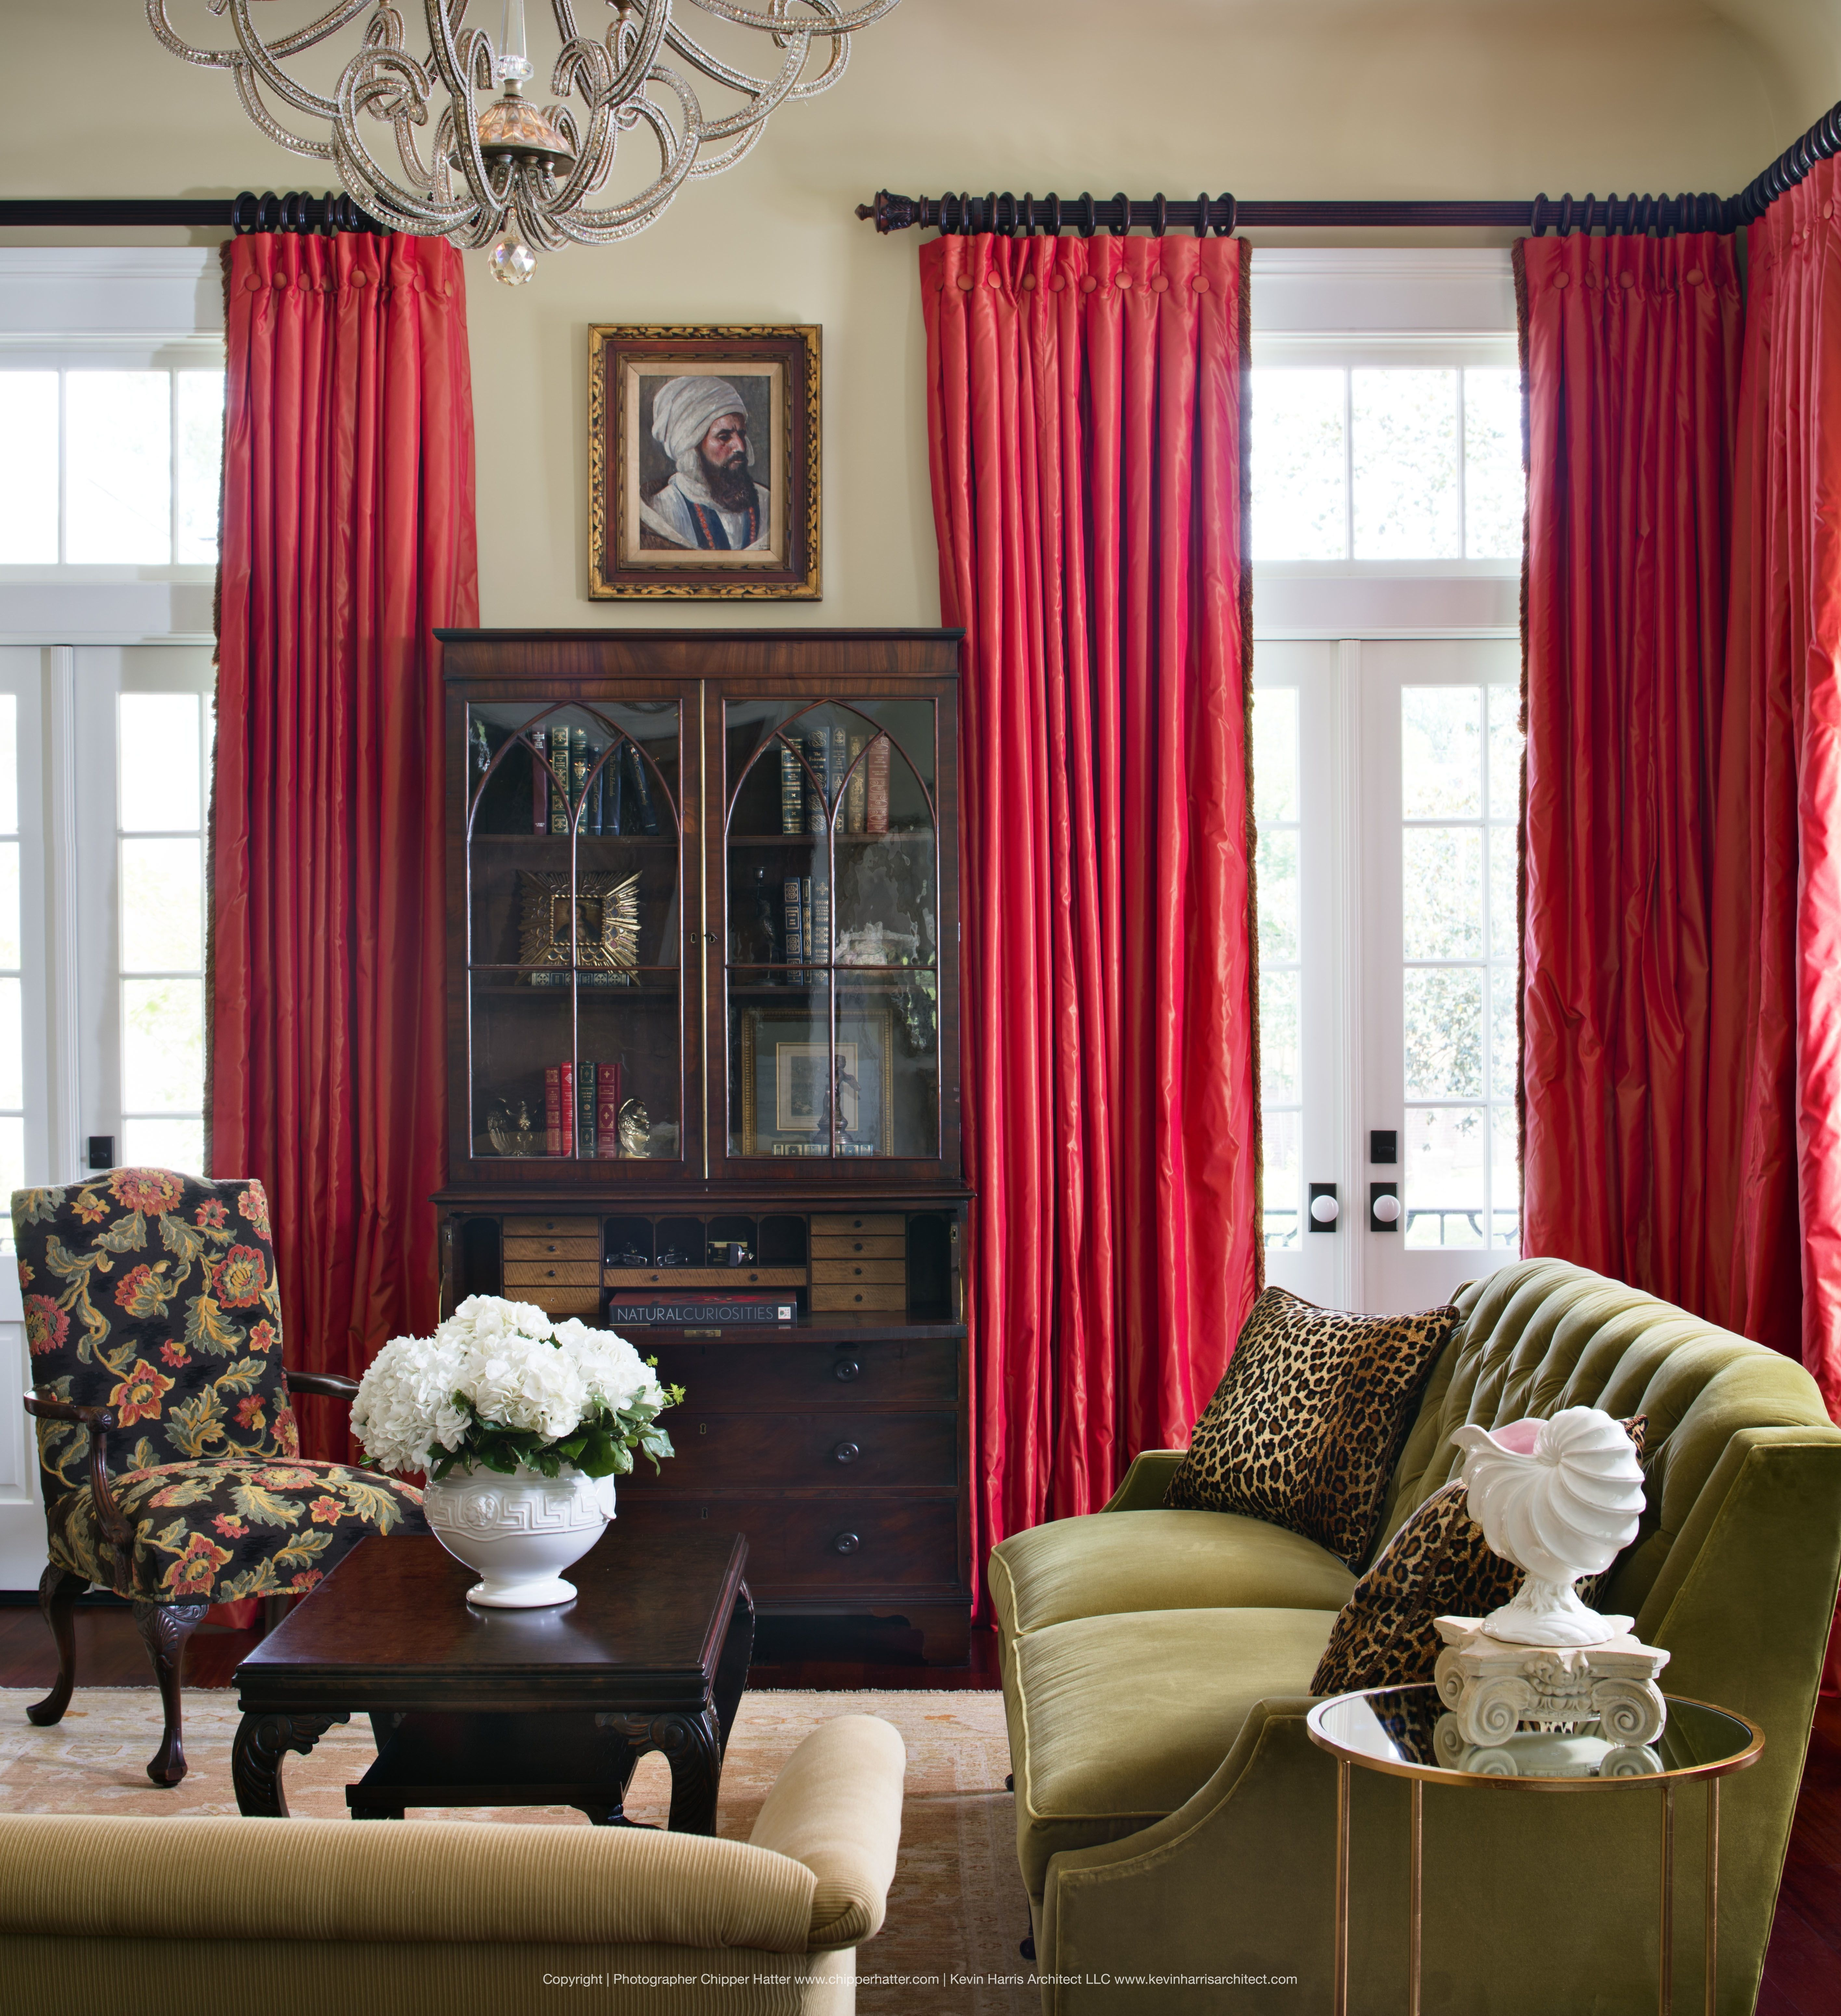 Home - Kevin Harris Architect, LLC | Home, New orleans ...